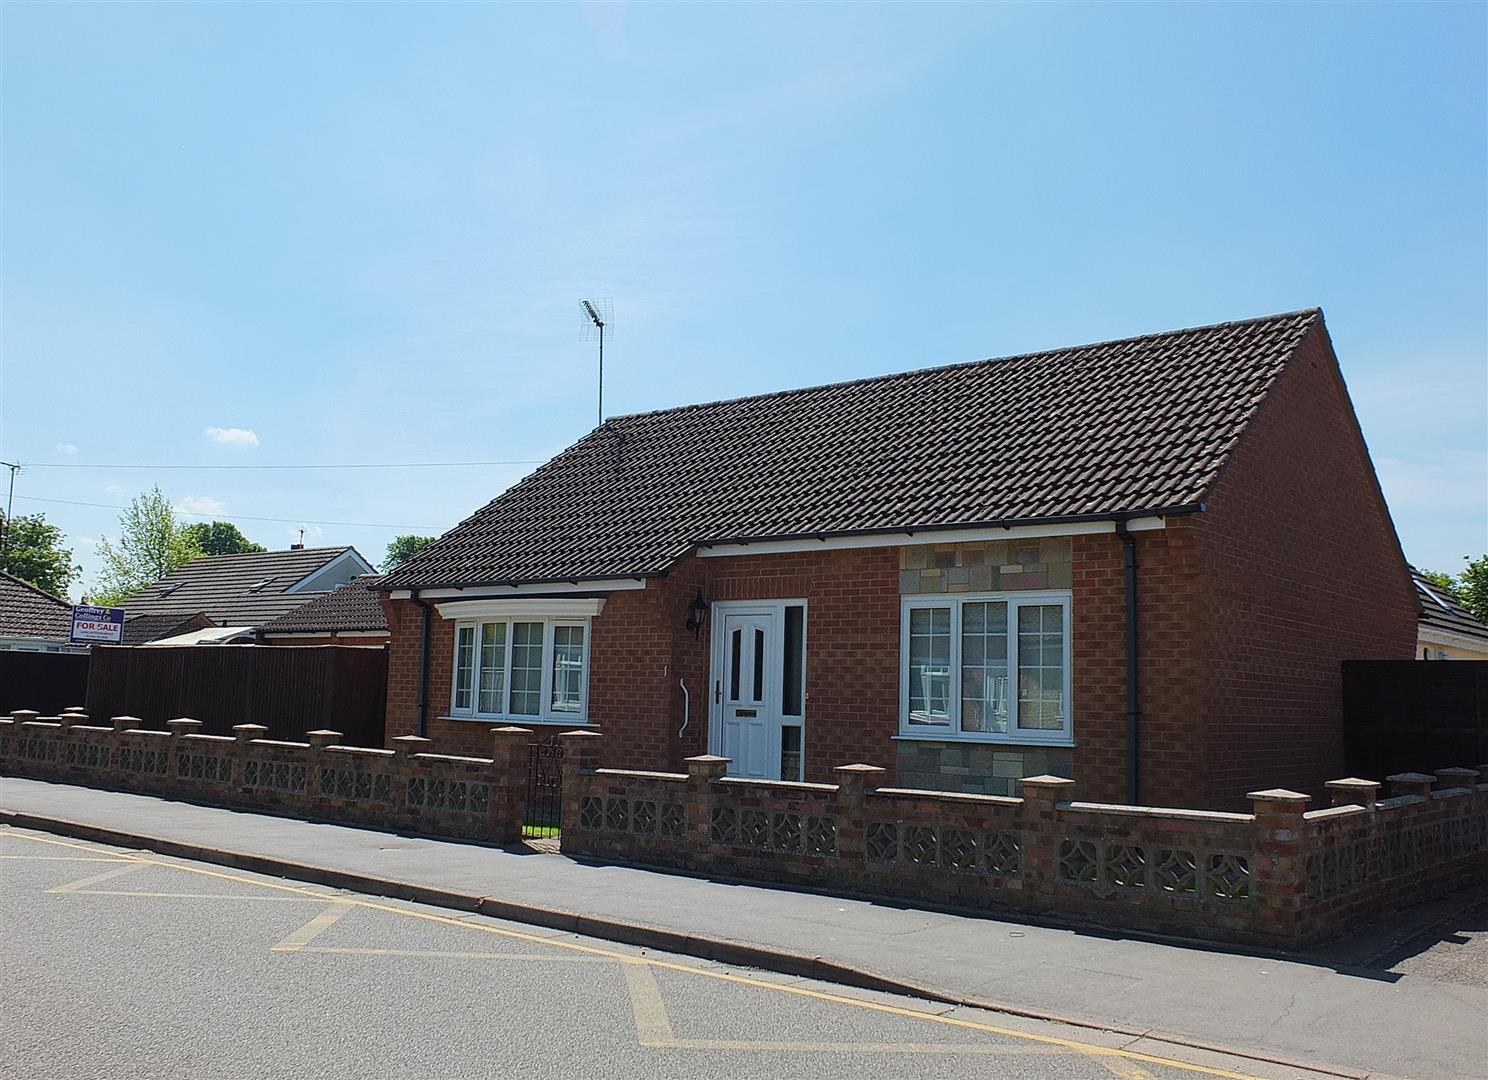 2 bed detached bungalow for sale in Long Sutton Spalding, PE12 9EP  - Property Image 1